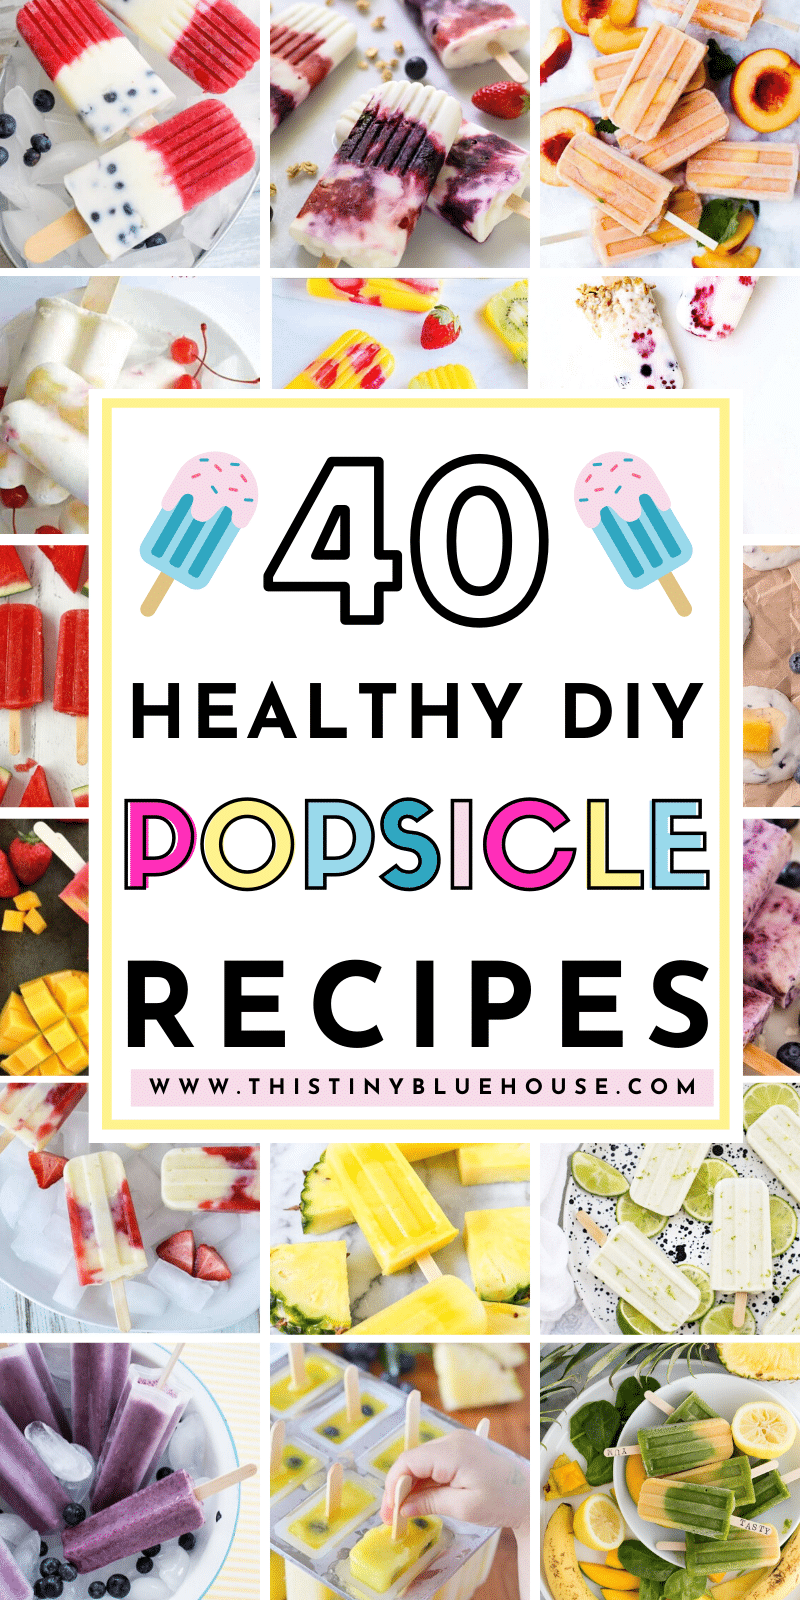 Indulge in one of these delicious, healthy and above all EASY homemade frozen popsicles that kids just love. These 40 homemade popsicle recipes are a great way to enjoy a healthy frozen treat without any guilt. #homemadepopsicles #easyhomemadepopsicles #homemadepopsiclerecipes #easyhomemadepopsicles #healthyhomemadepopsicles #DIYHomemadePopsicles #EasyKidsPopsicles